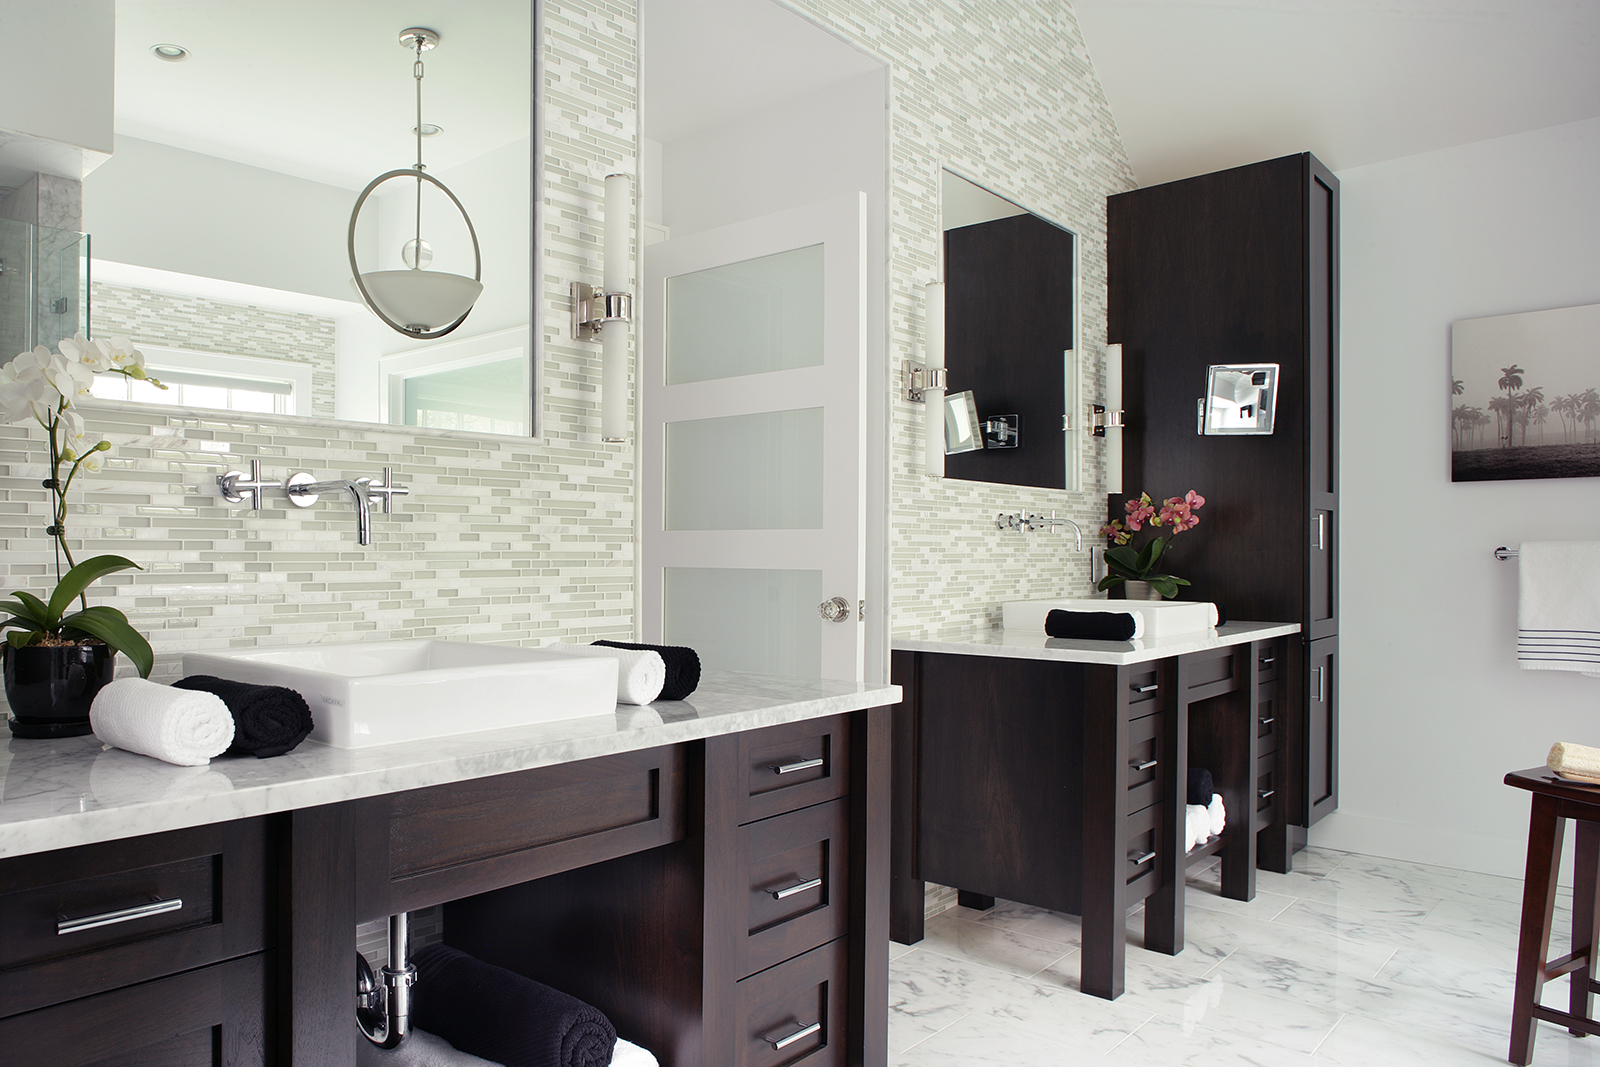 Peter Salerno Inc Transitional Bathroom Wins 2015 National Design Award Photos Design Your